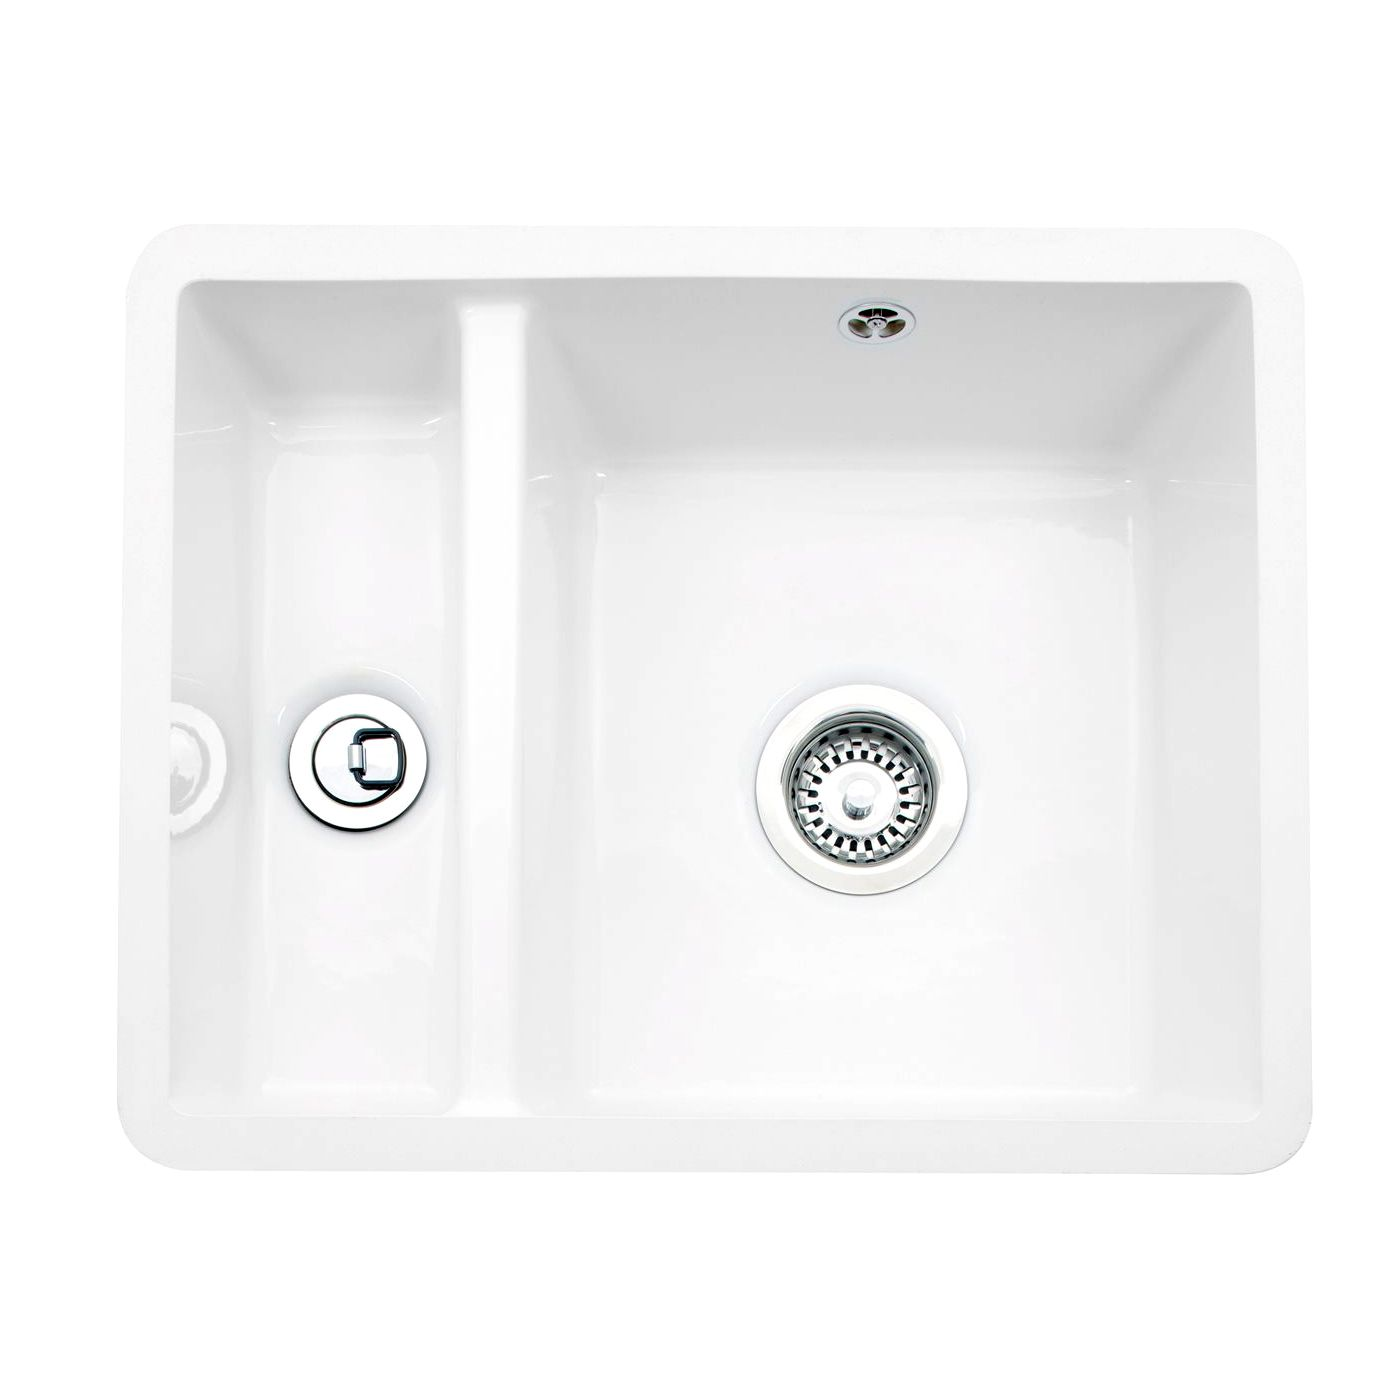 Ceramic Kitchen Sink Caple Friska 1 5 Bowl Undermount Ceramic Sink Sinks Taps